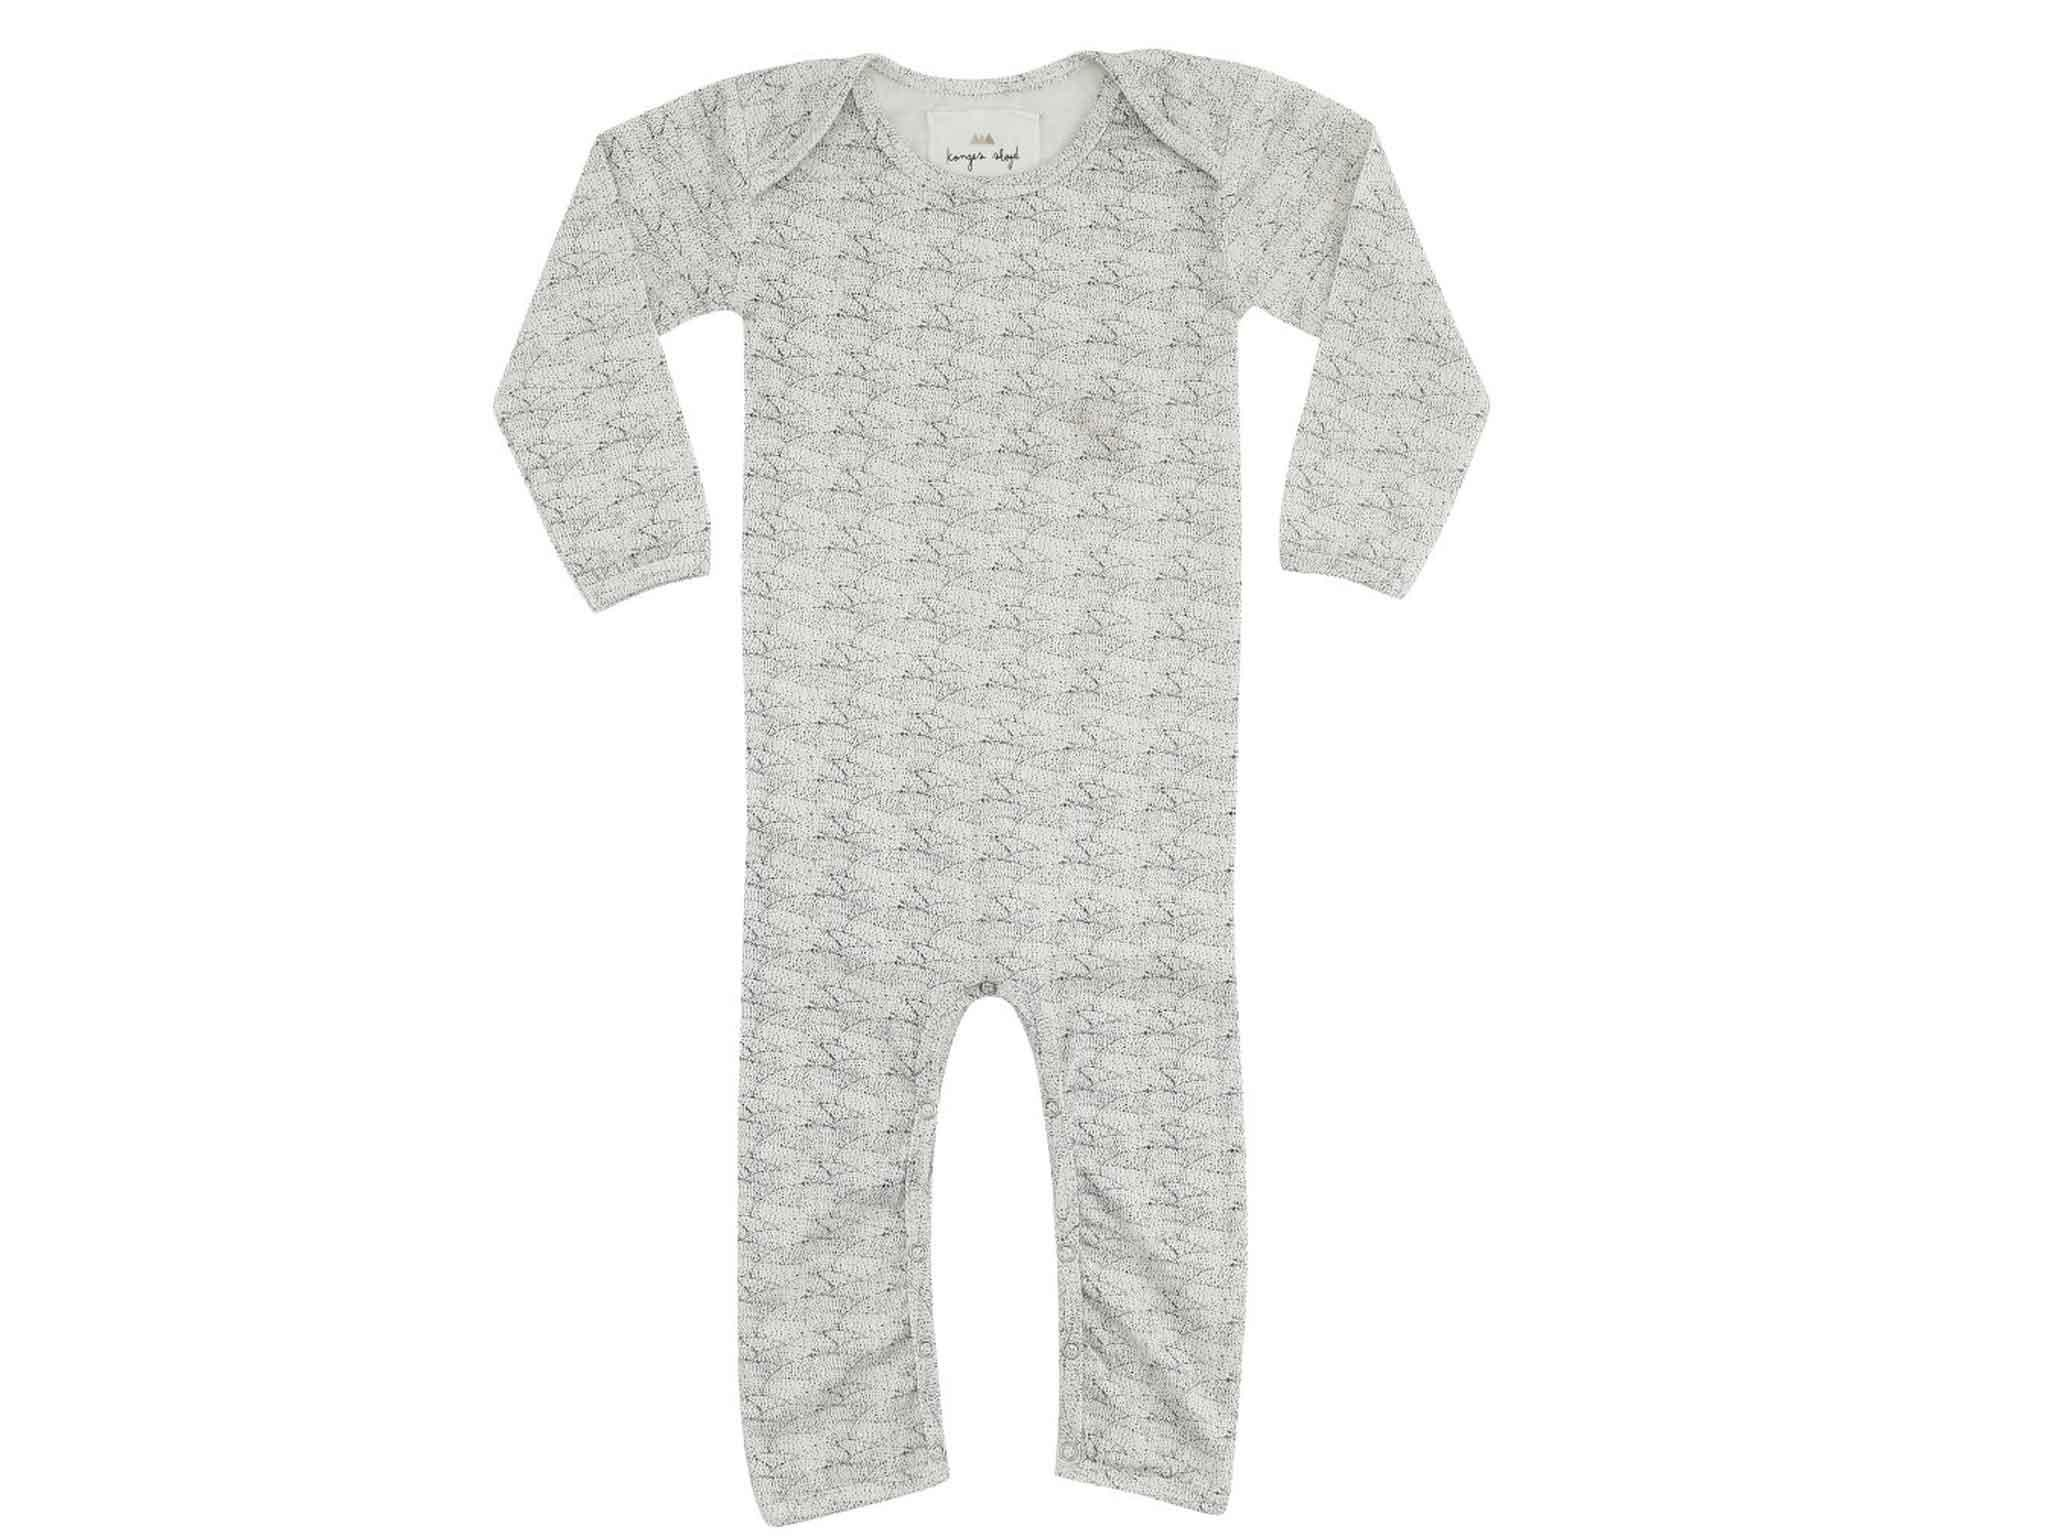 England Britain South East I LOVE KENT Fun Themed Baby Grow//Suit UK